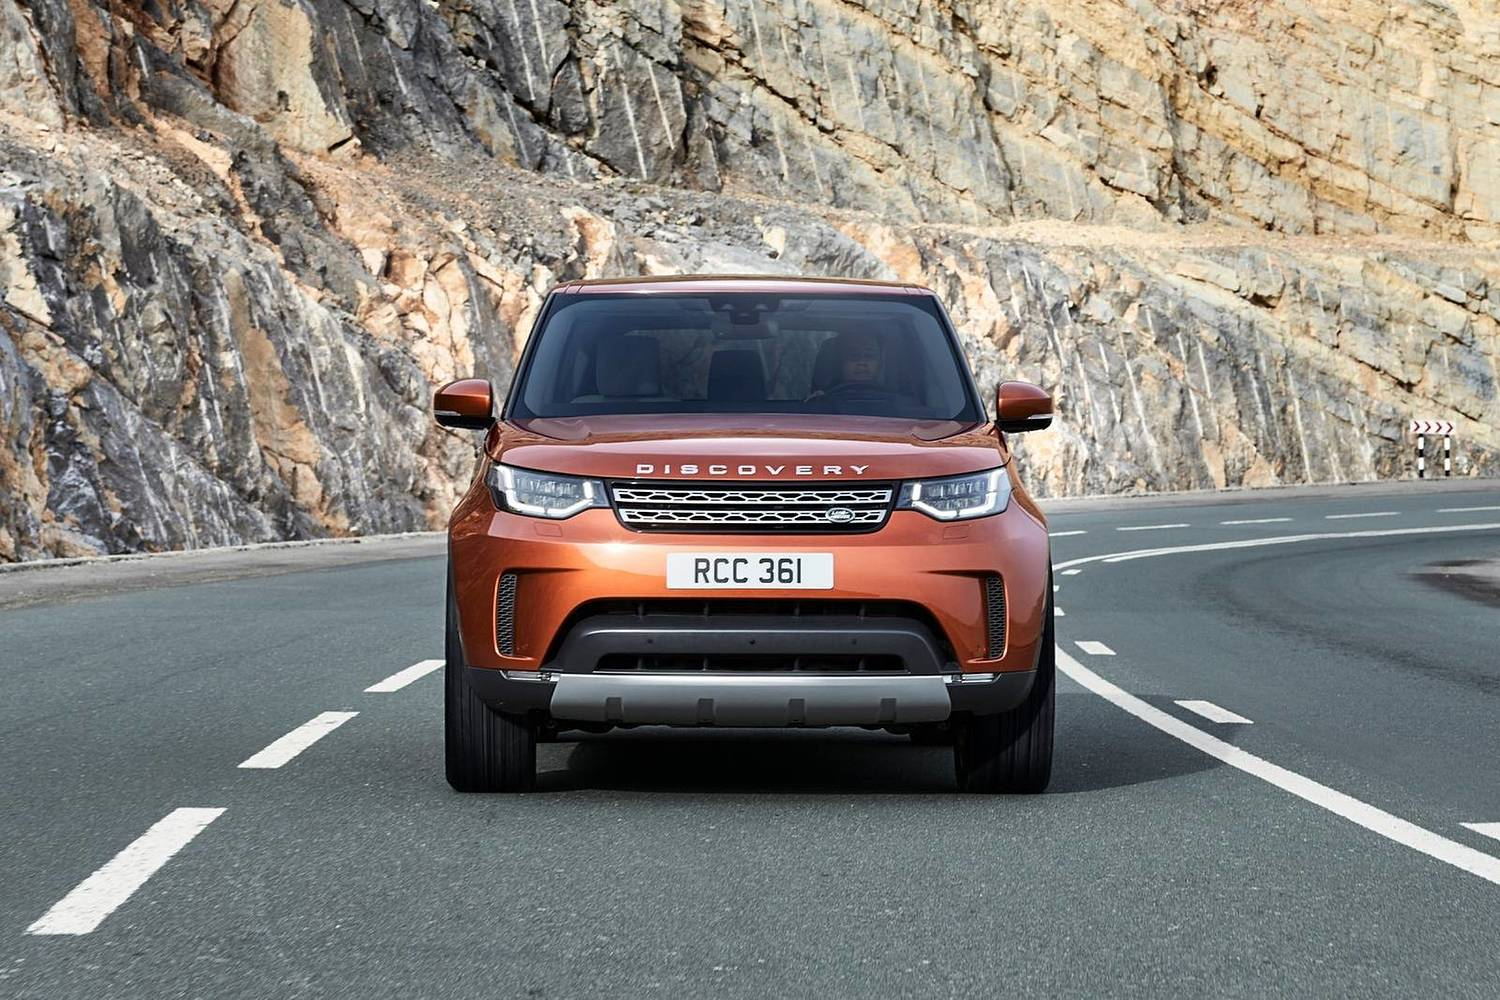 Land Rover Discovery HSE Td6 4dr SUV Exterior Shown (2017 model year shown)